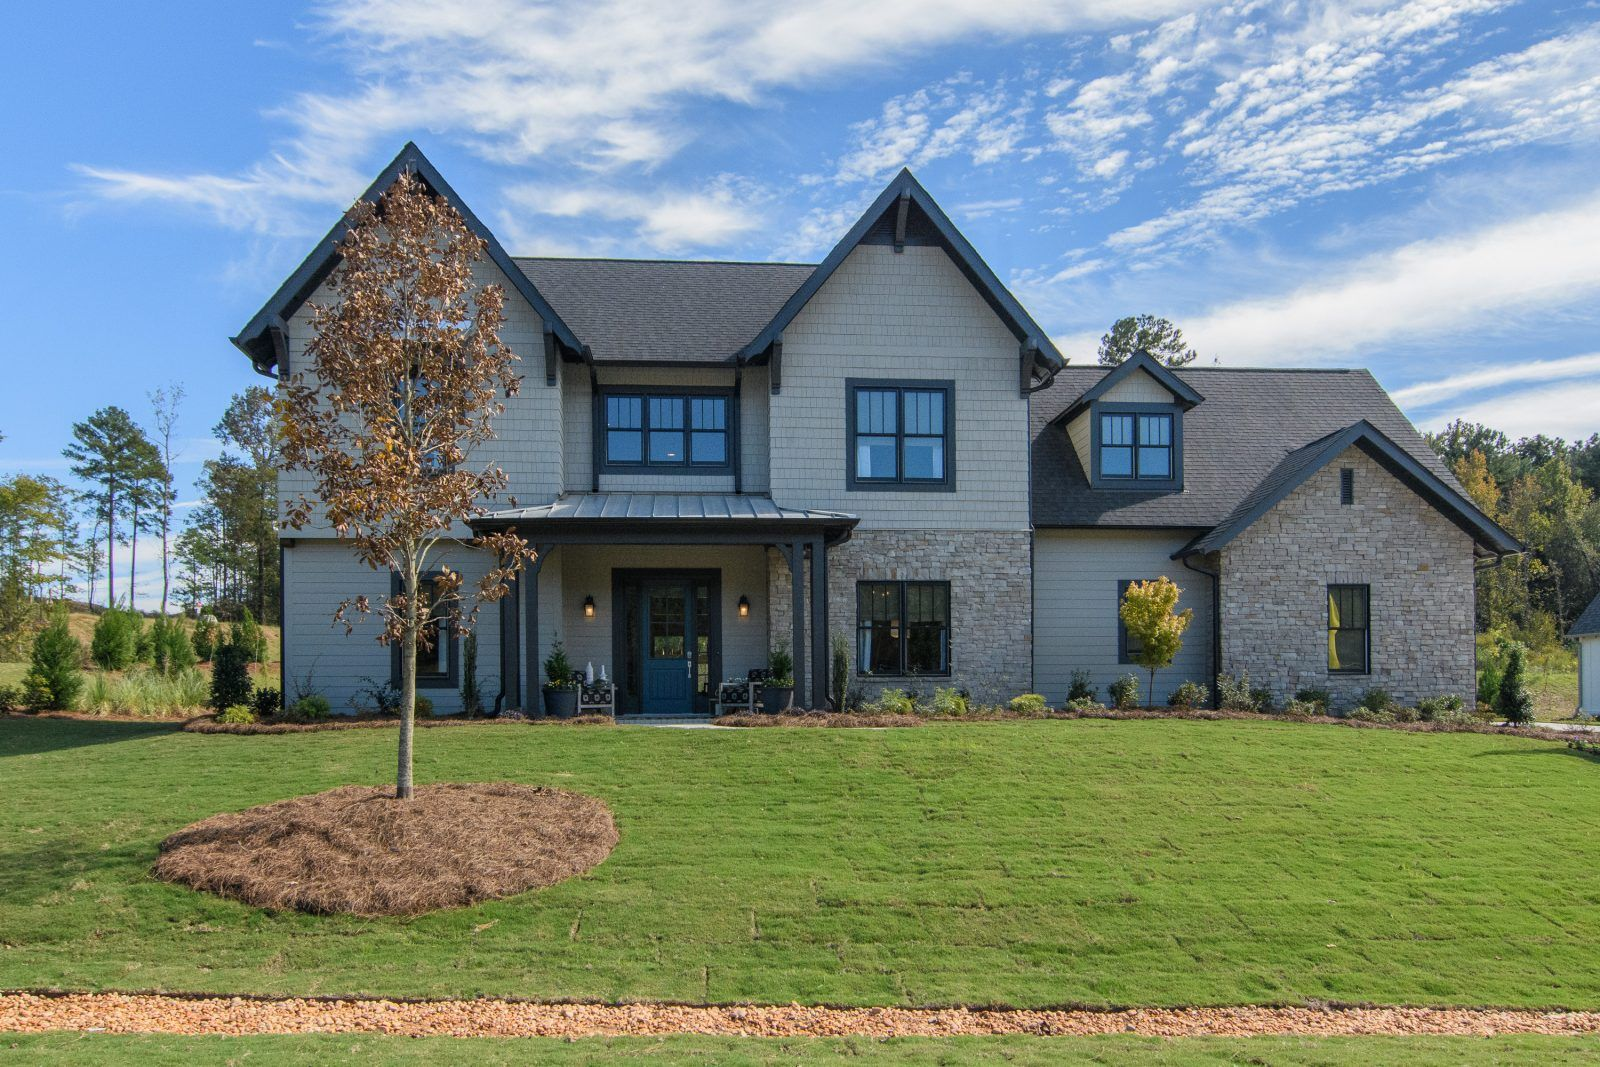 单亲家庭 为 销售 在 Keeneland 2b- Homesite 1038 2348 Blackridge Drive Hoover, Alabama 35244 United States